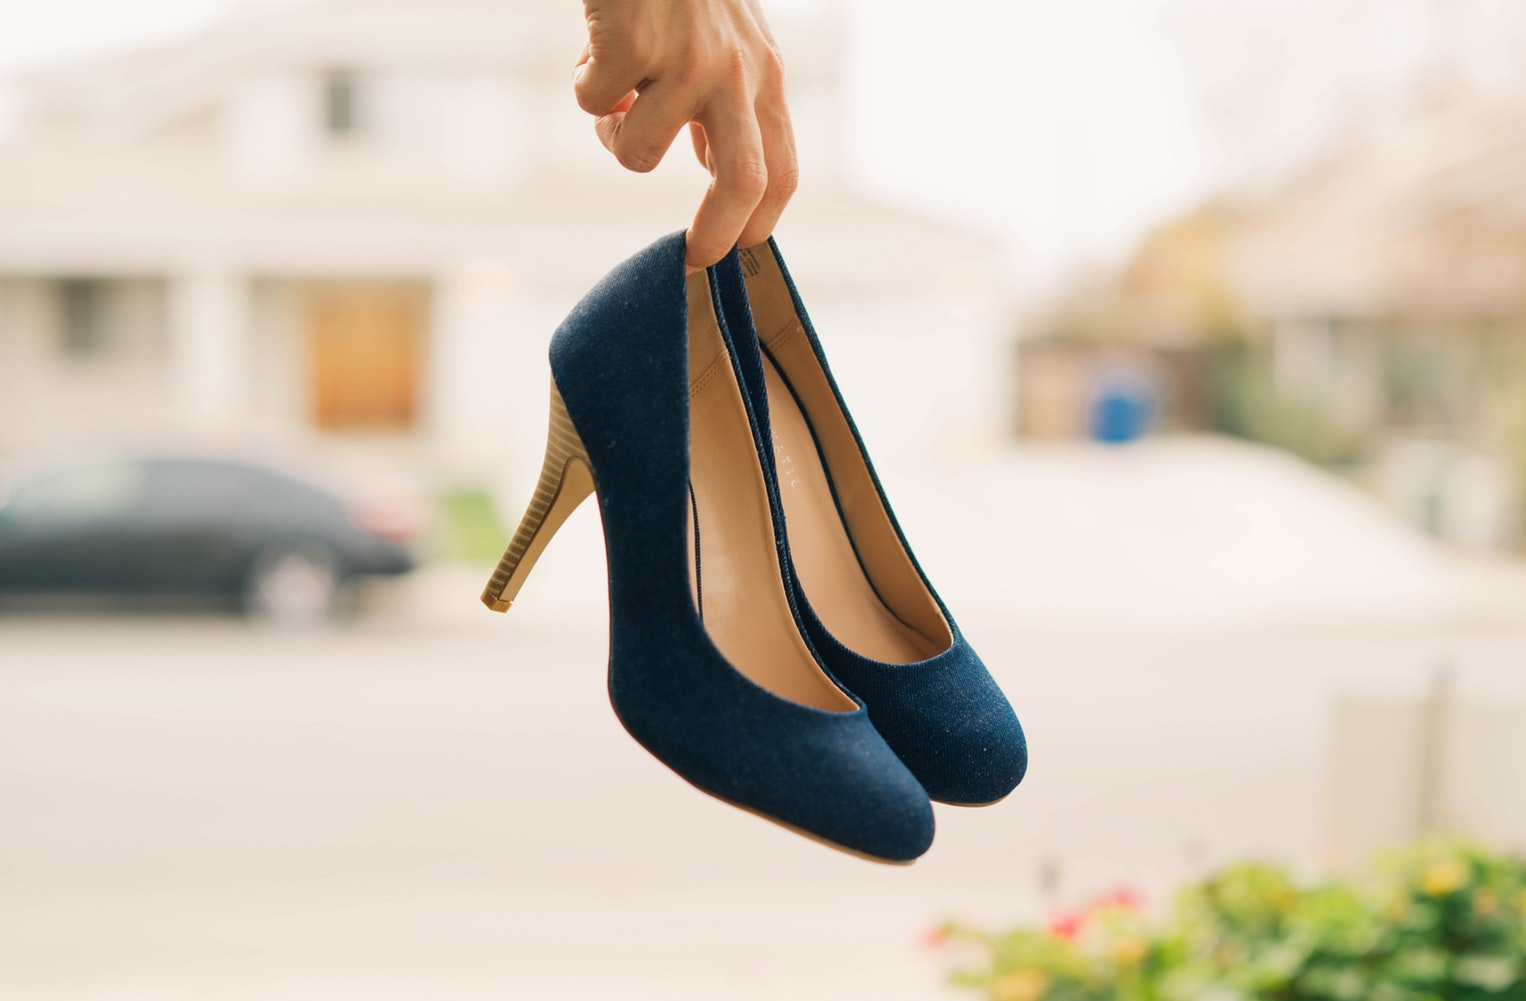 The Different Types and Styles of Women's Shoes